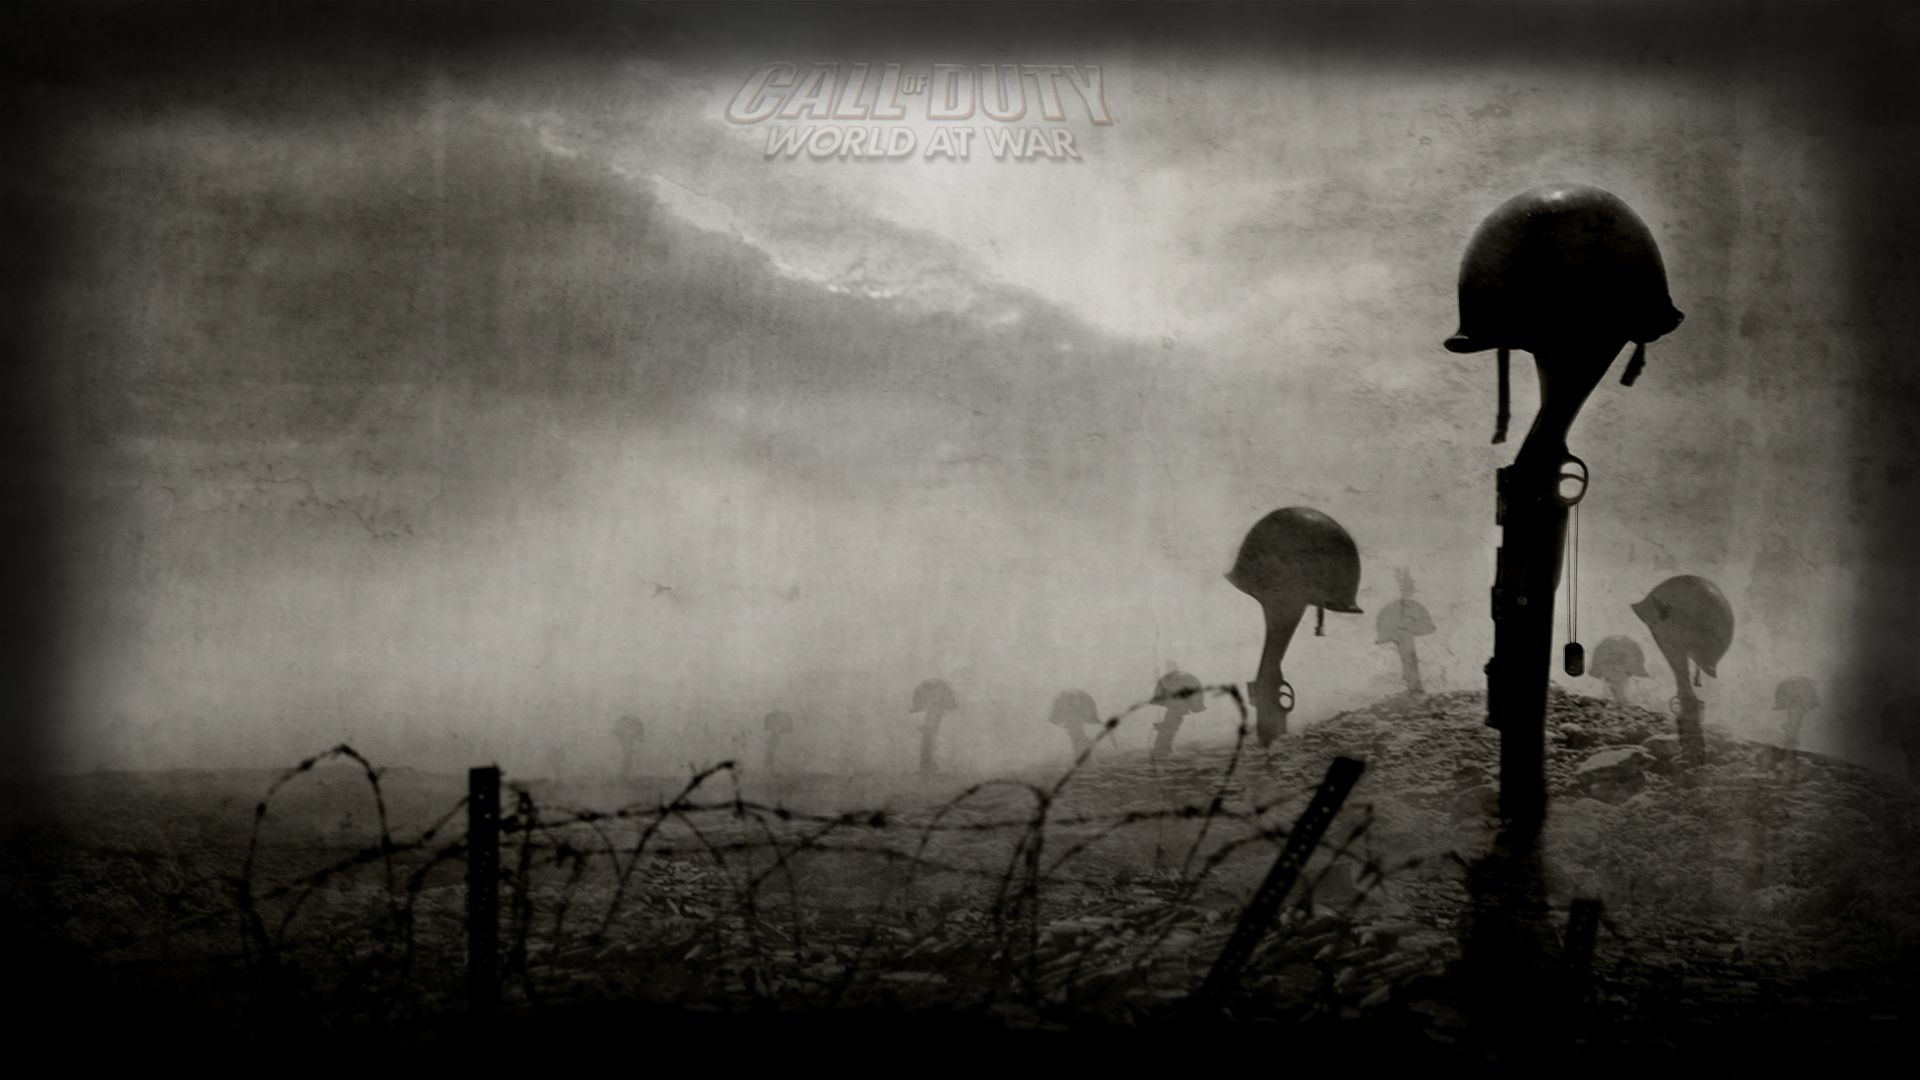 world at war hd wallpapers download awesome desktop backgrounds 1920x1080